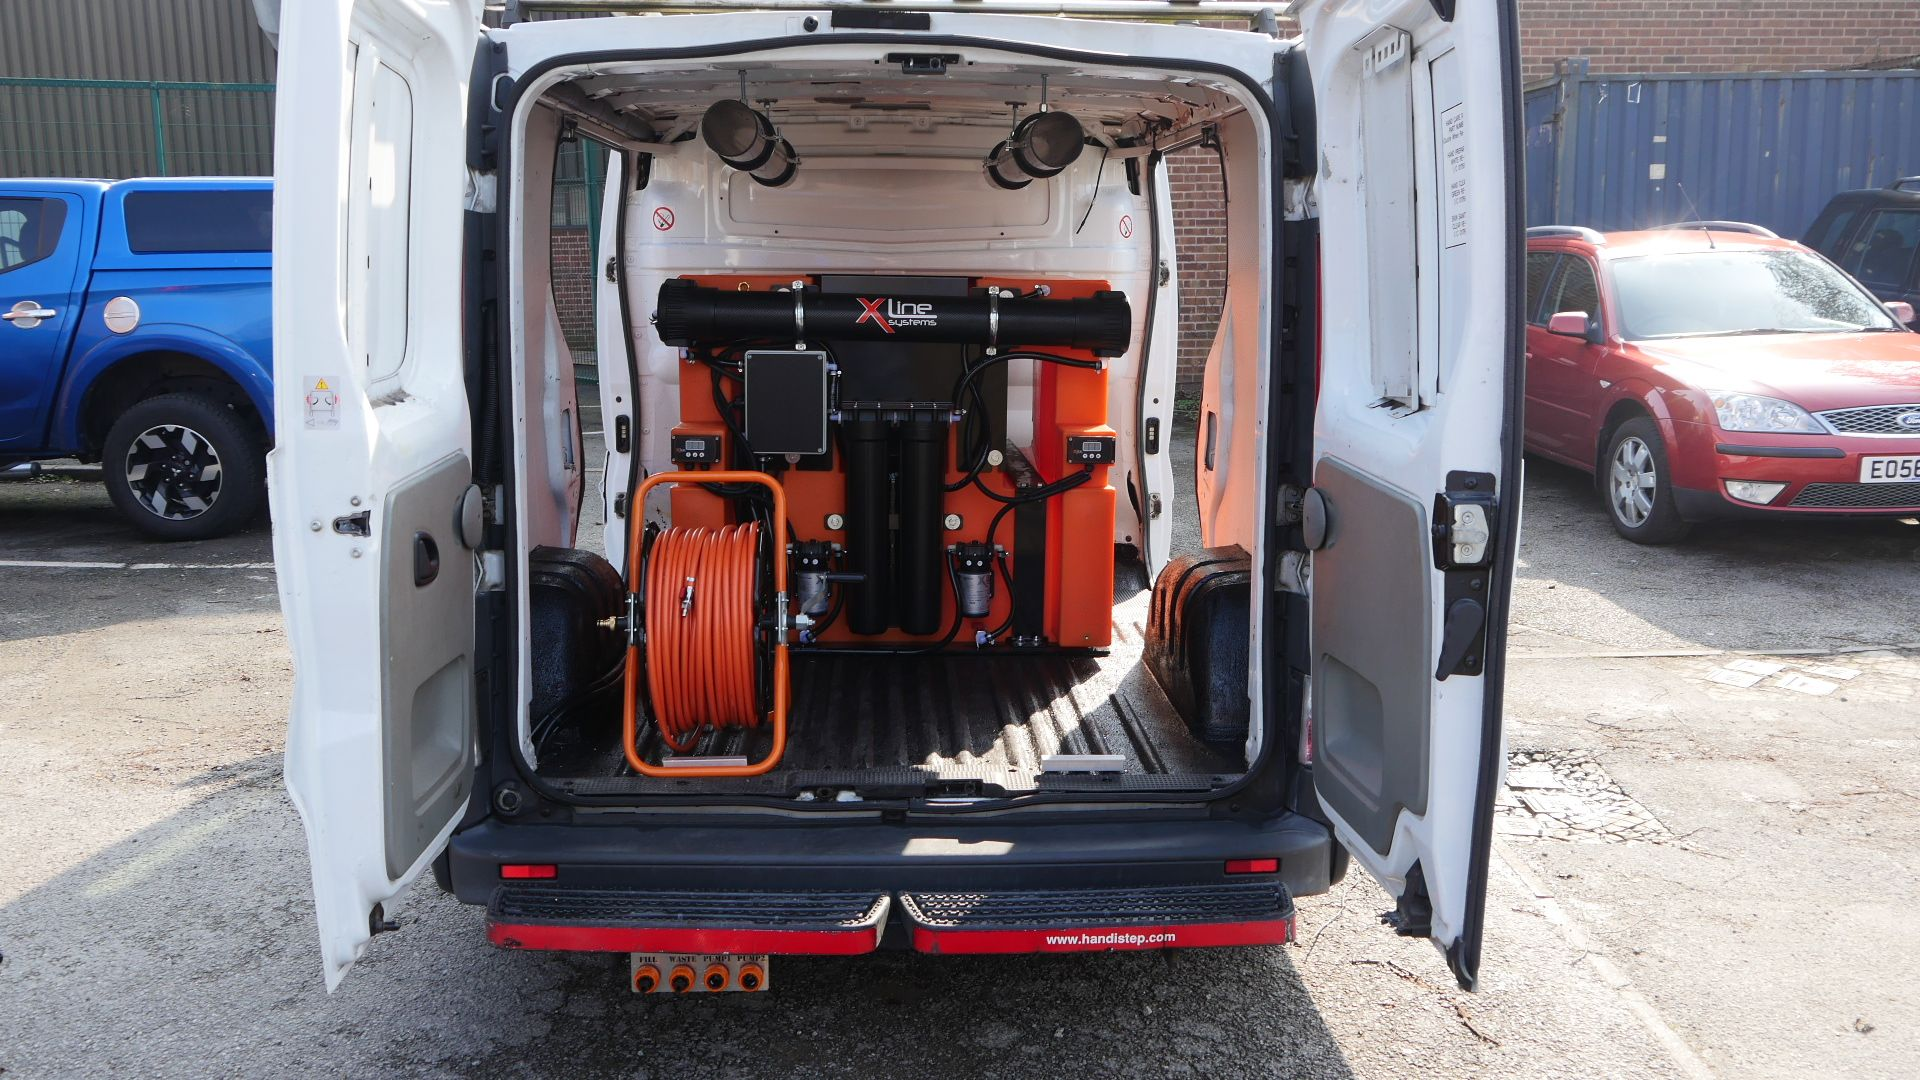 750ltr 2 Man Window Cleaning System